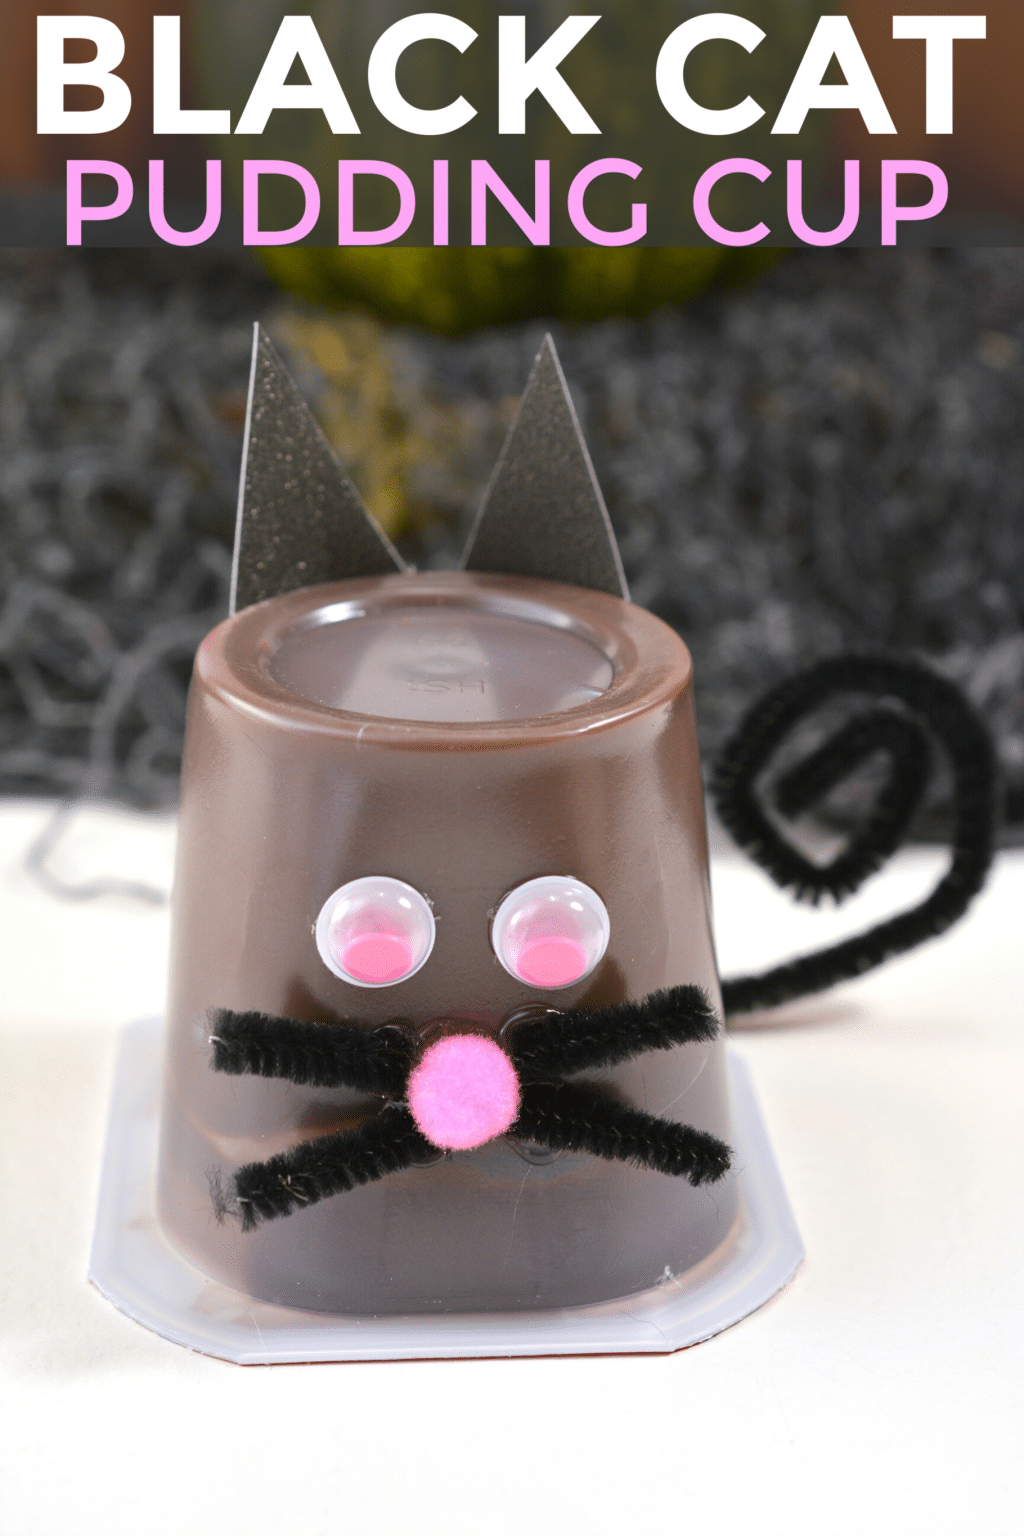 This black cat pudding cup is such a fun Halloween treat idea and it's super easy! #Halloween #treats #crafts #funfood